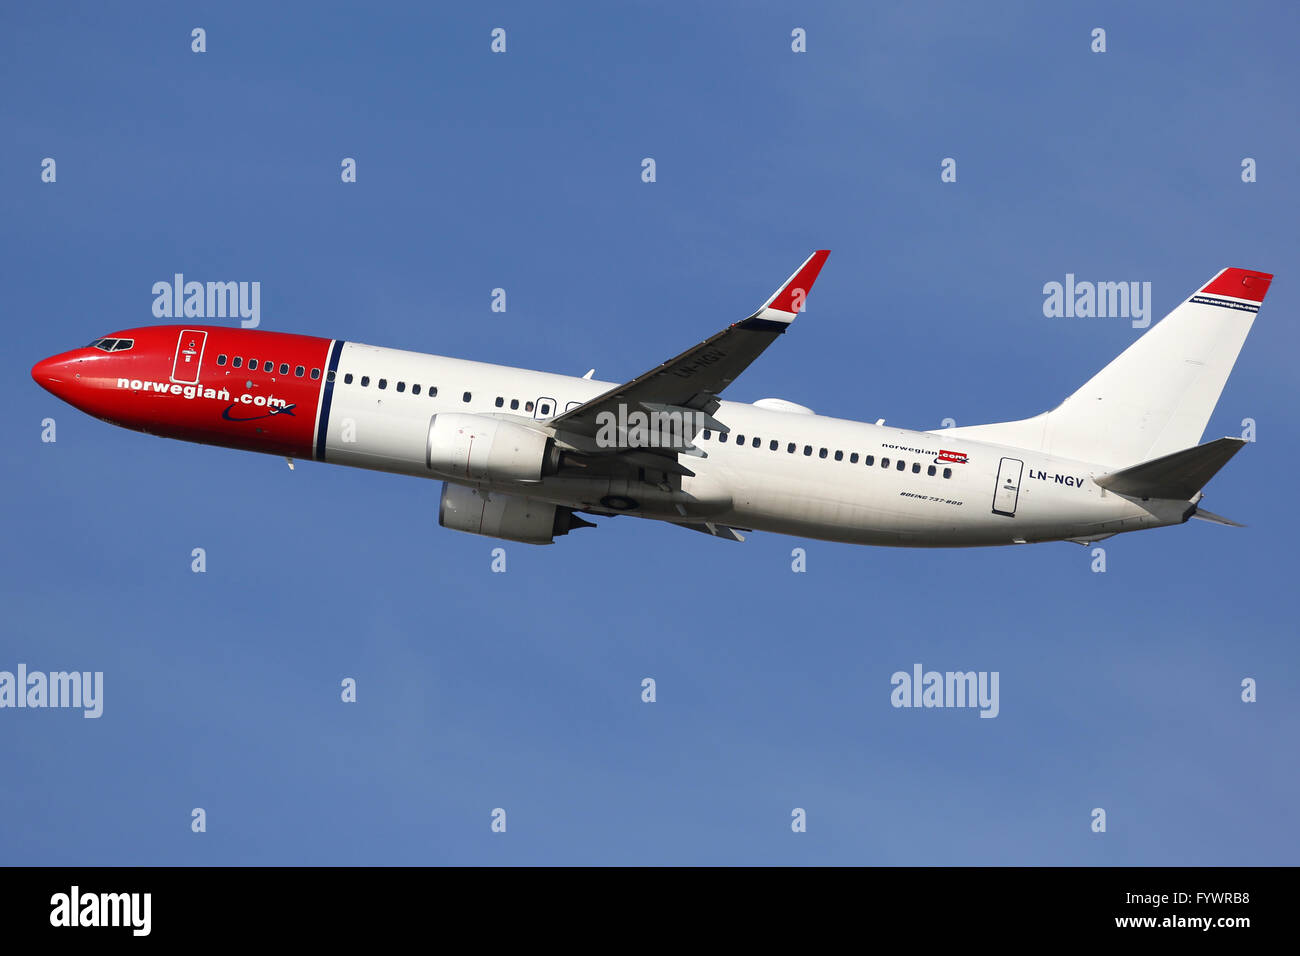 Norwegian Air Shuttle Boeing 737-800 Flugzeug Stockbild